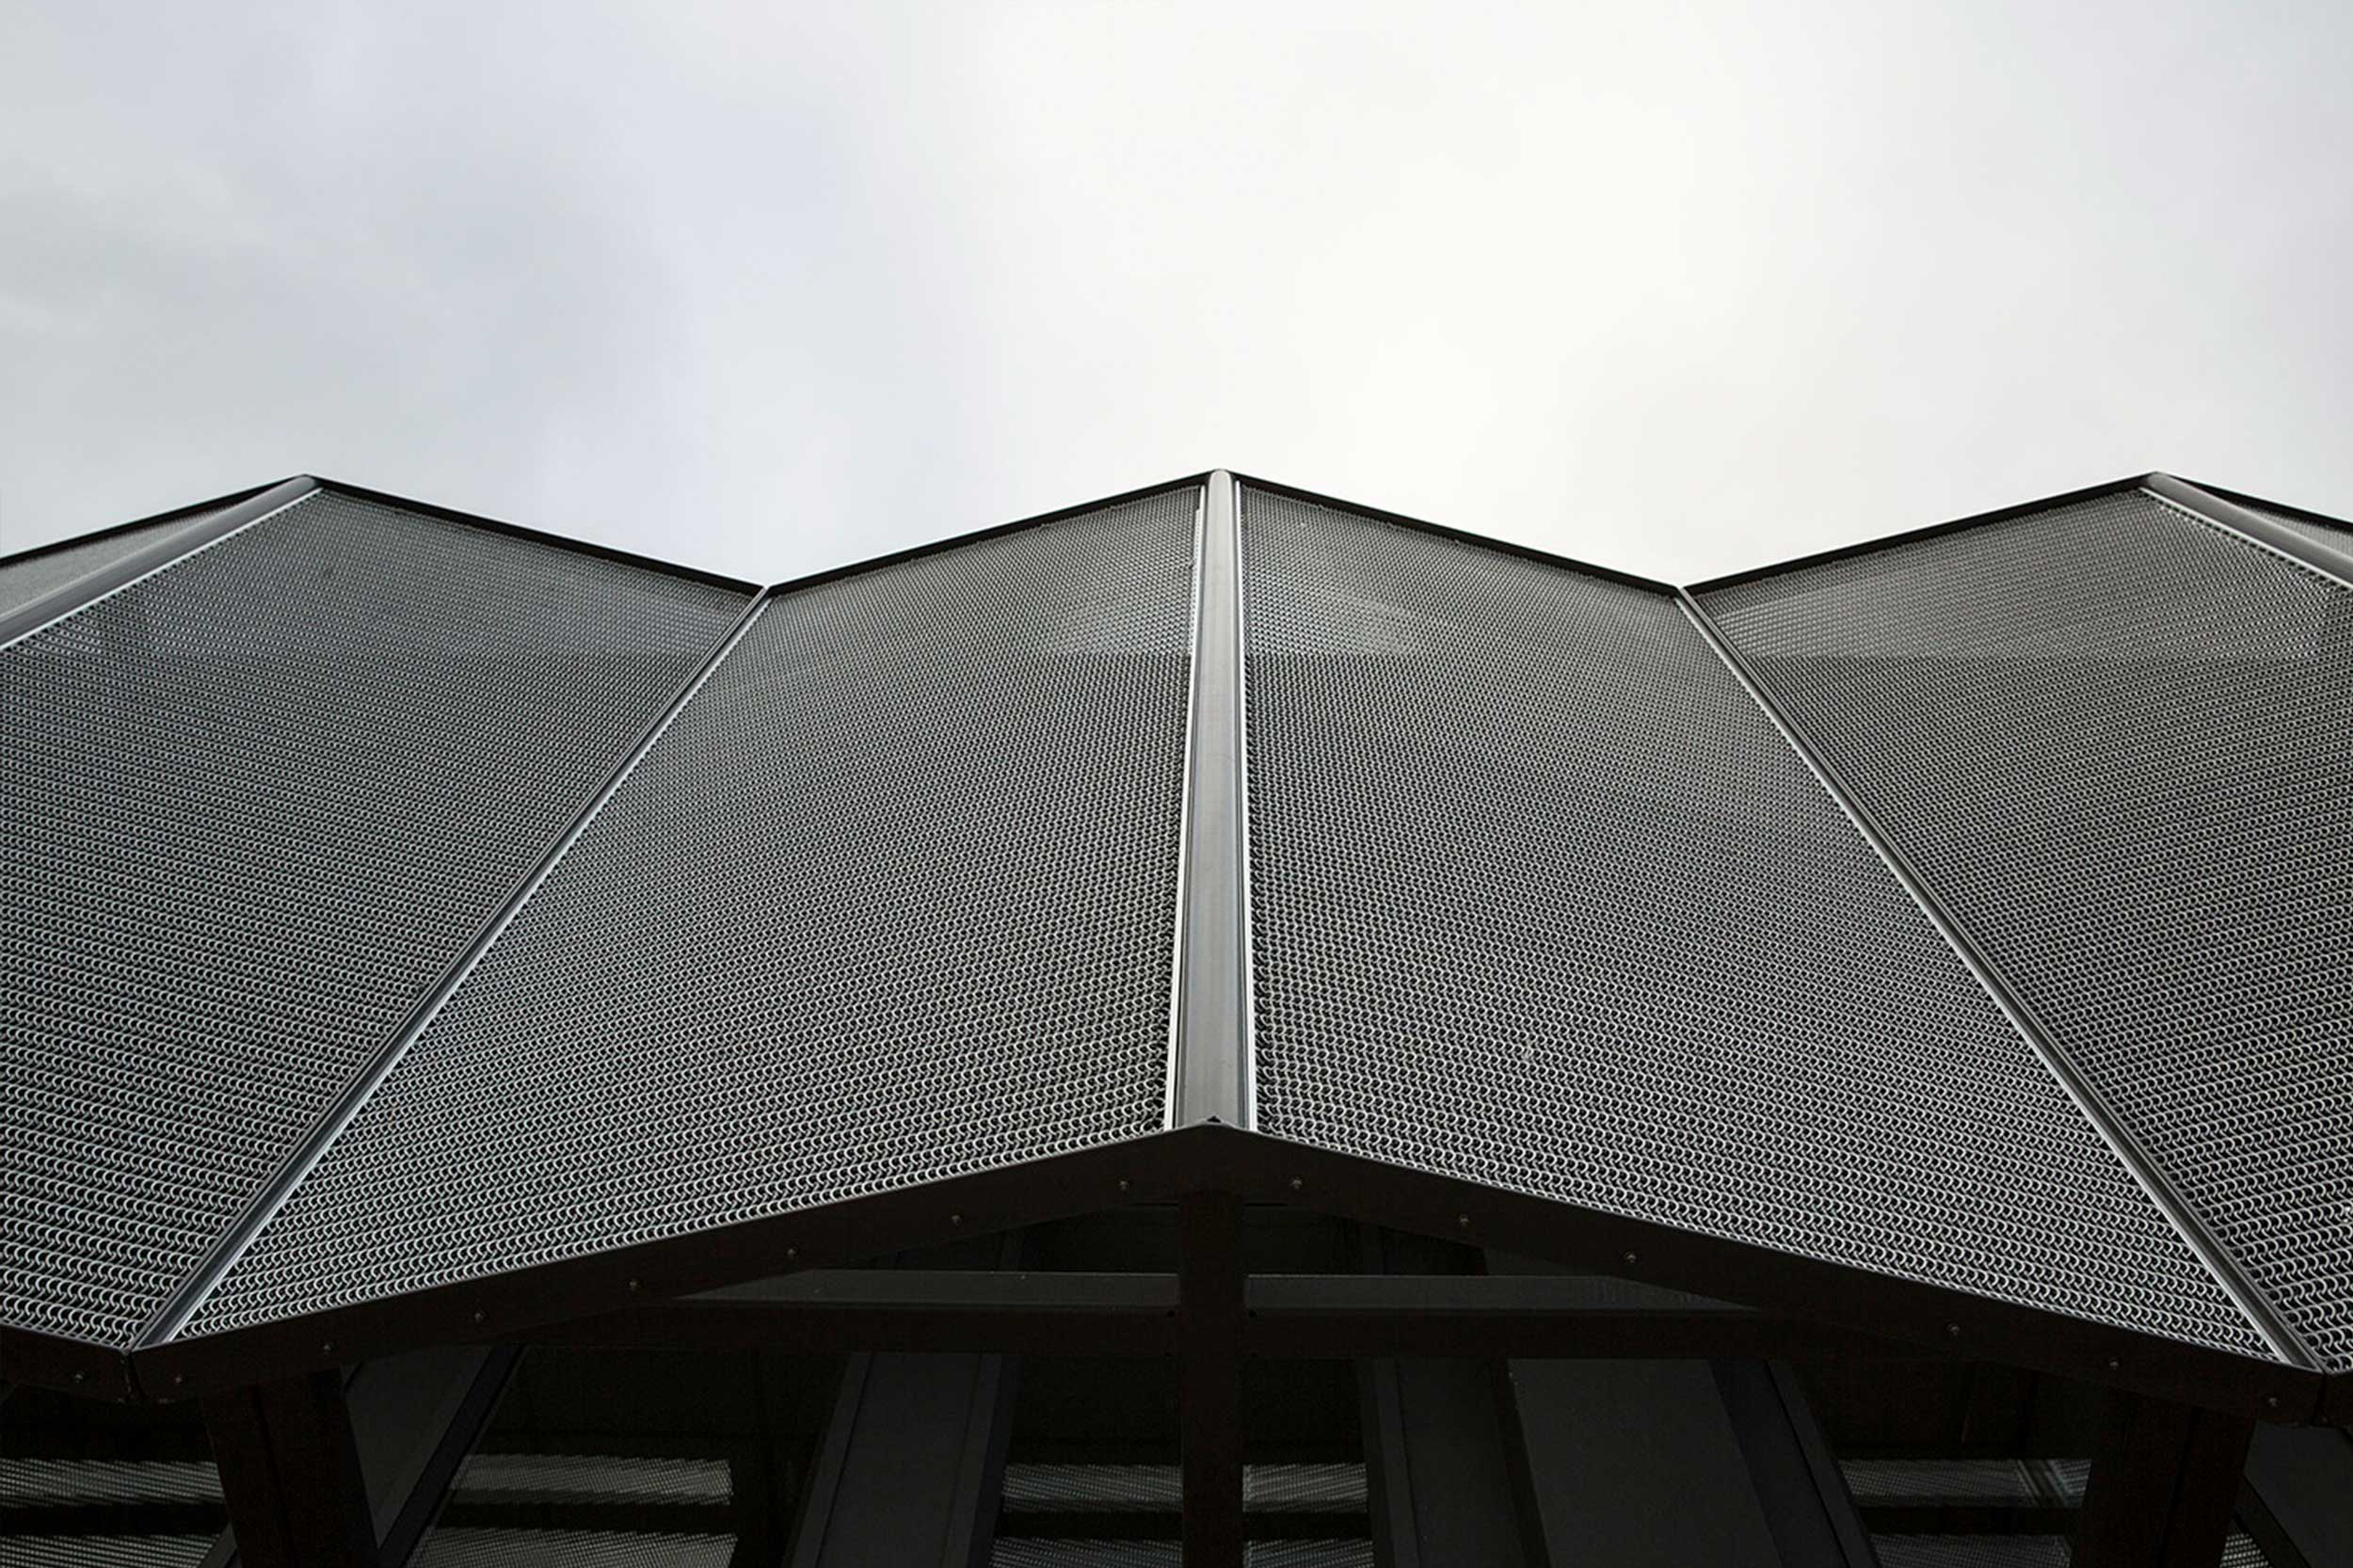 Distribution Centre Solar Facade